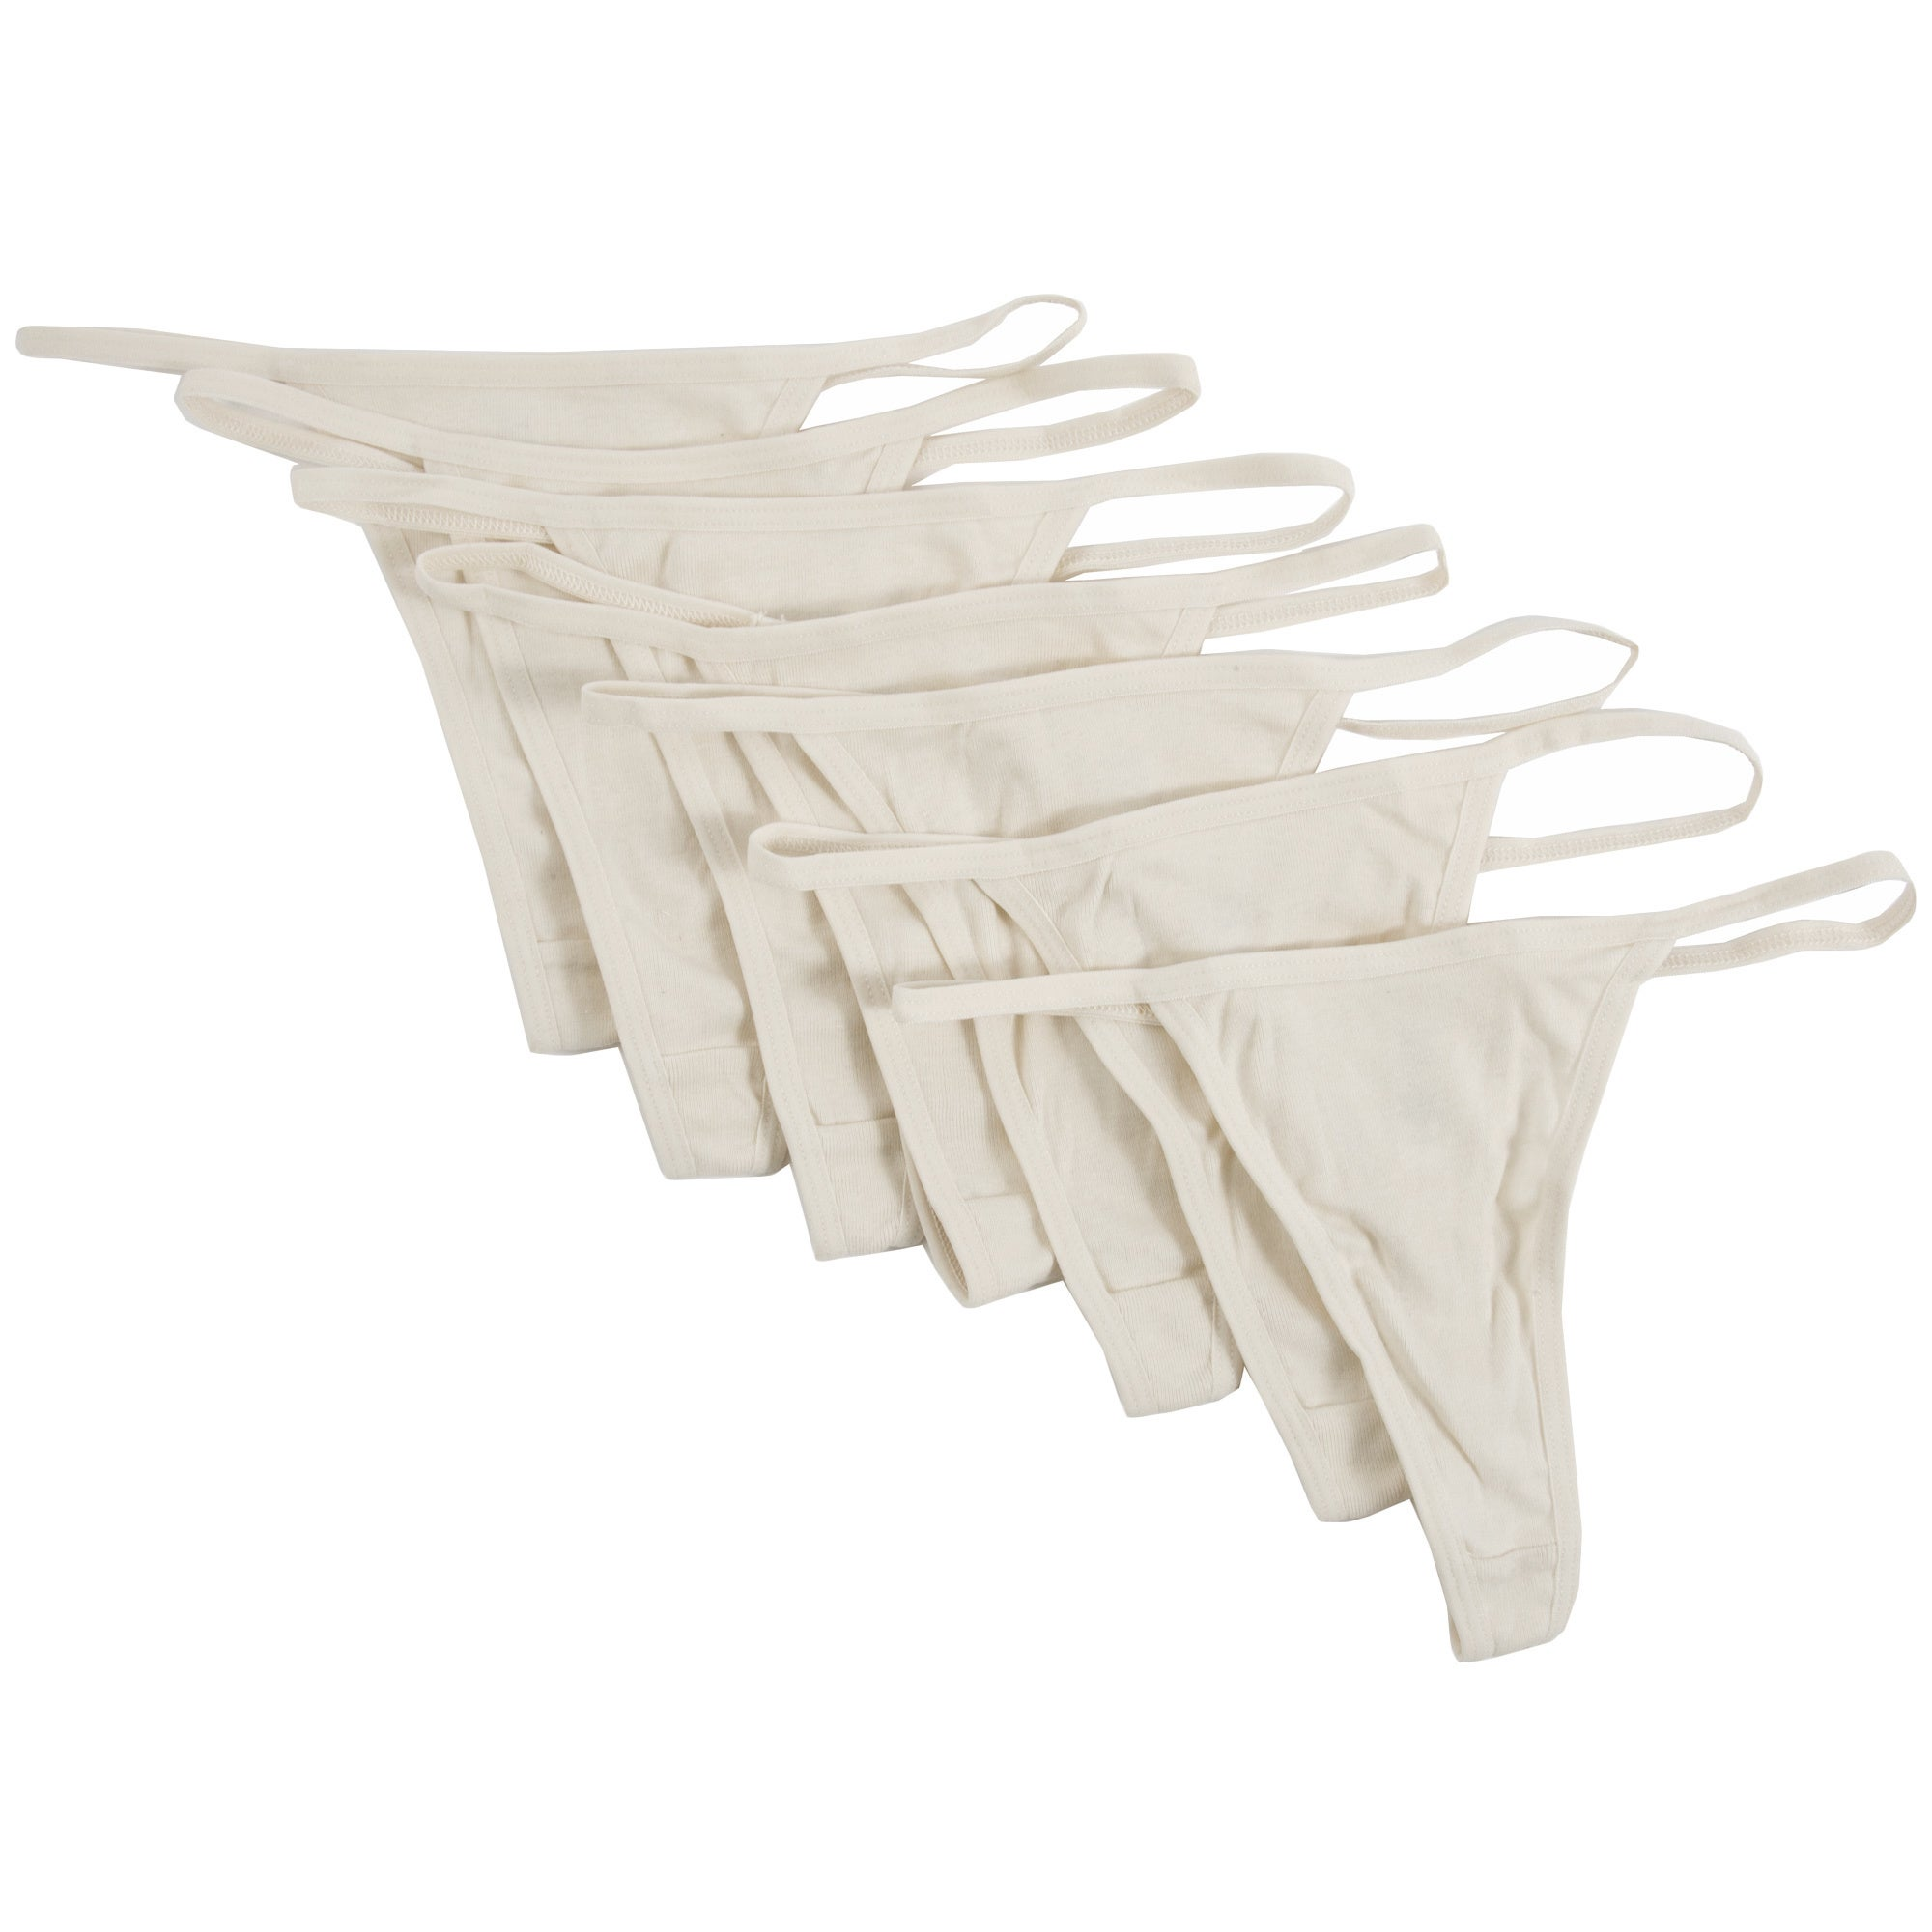 6c99c1316 Shop American Apparel Women s Organic Baby Rib Thongs (7-Pack) (XL) - Free  Shipping On Orders Over  45 - Overstock - 6986649